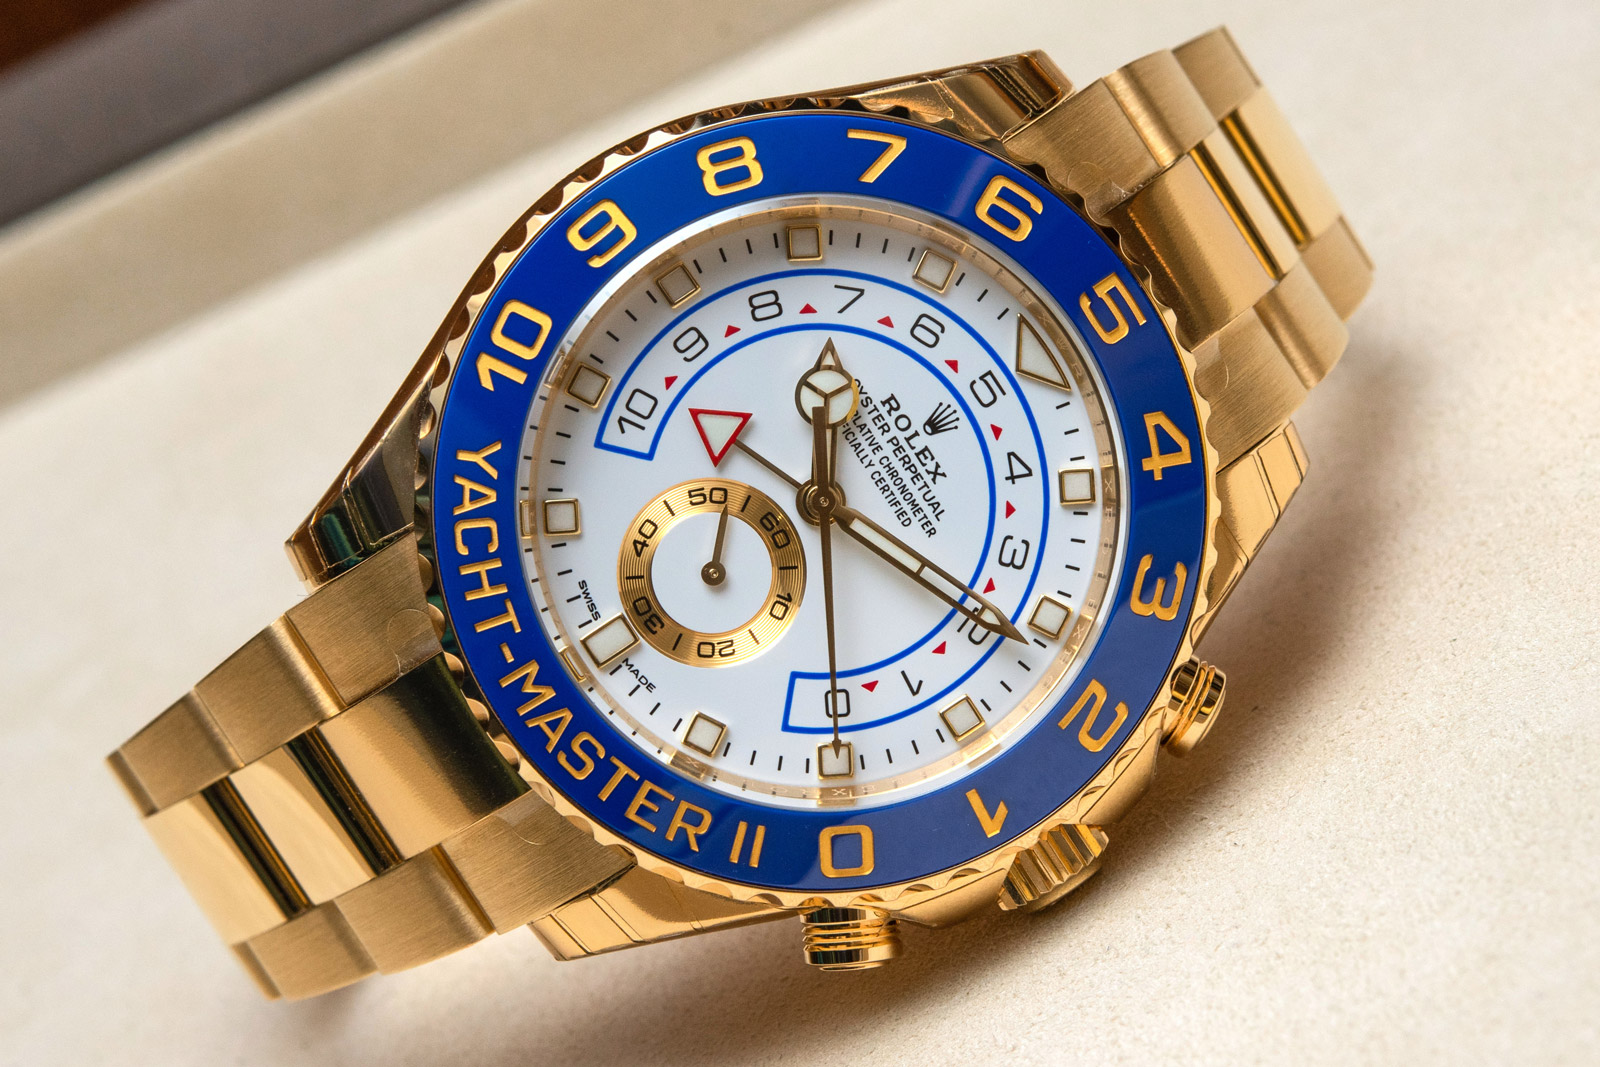 Rolex Yacht-Master II <br> Referencia 116688